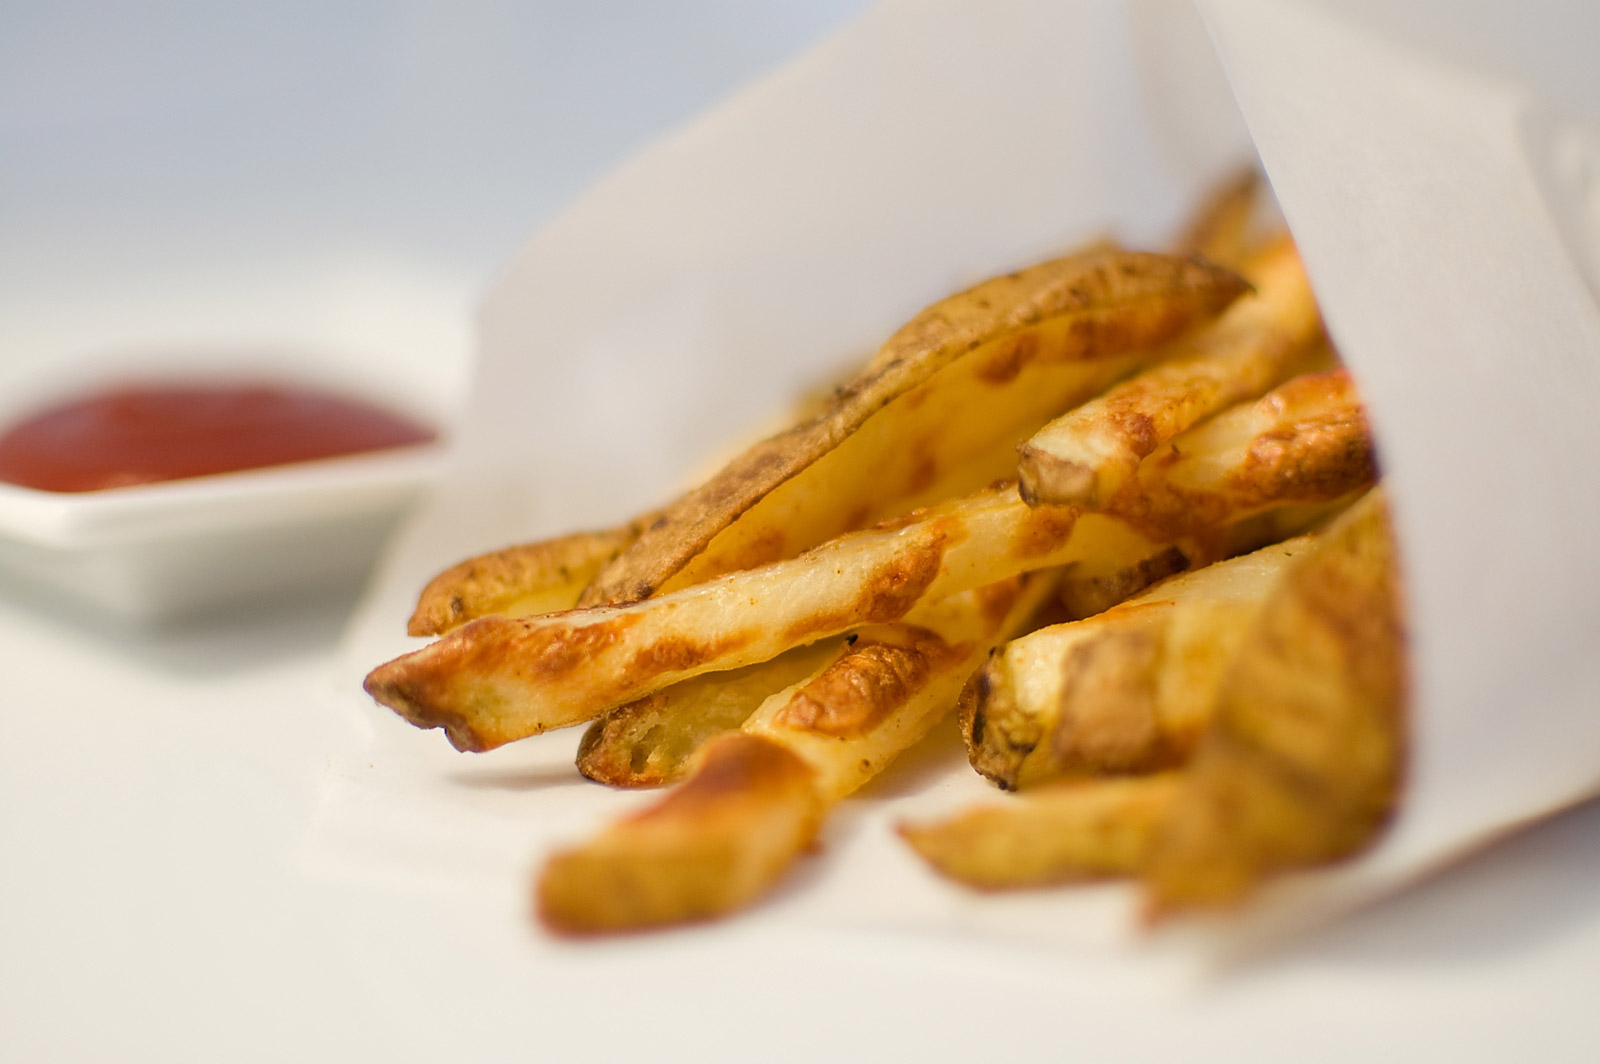 Rock & Roll Cafe: French Fry Heaven